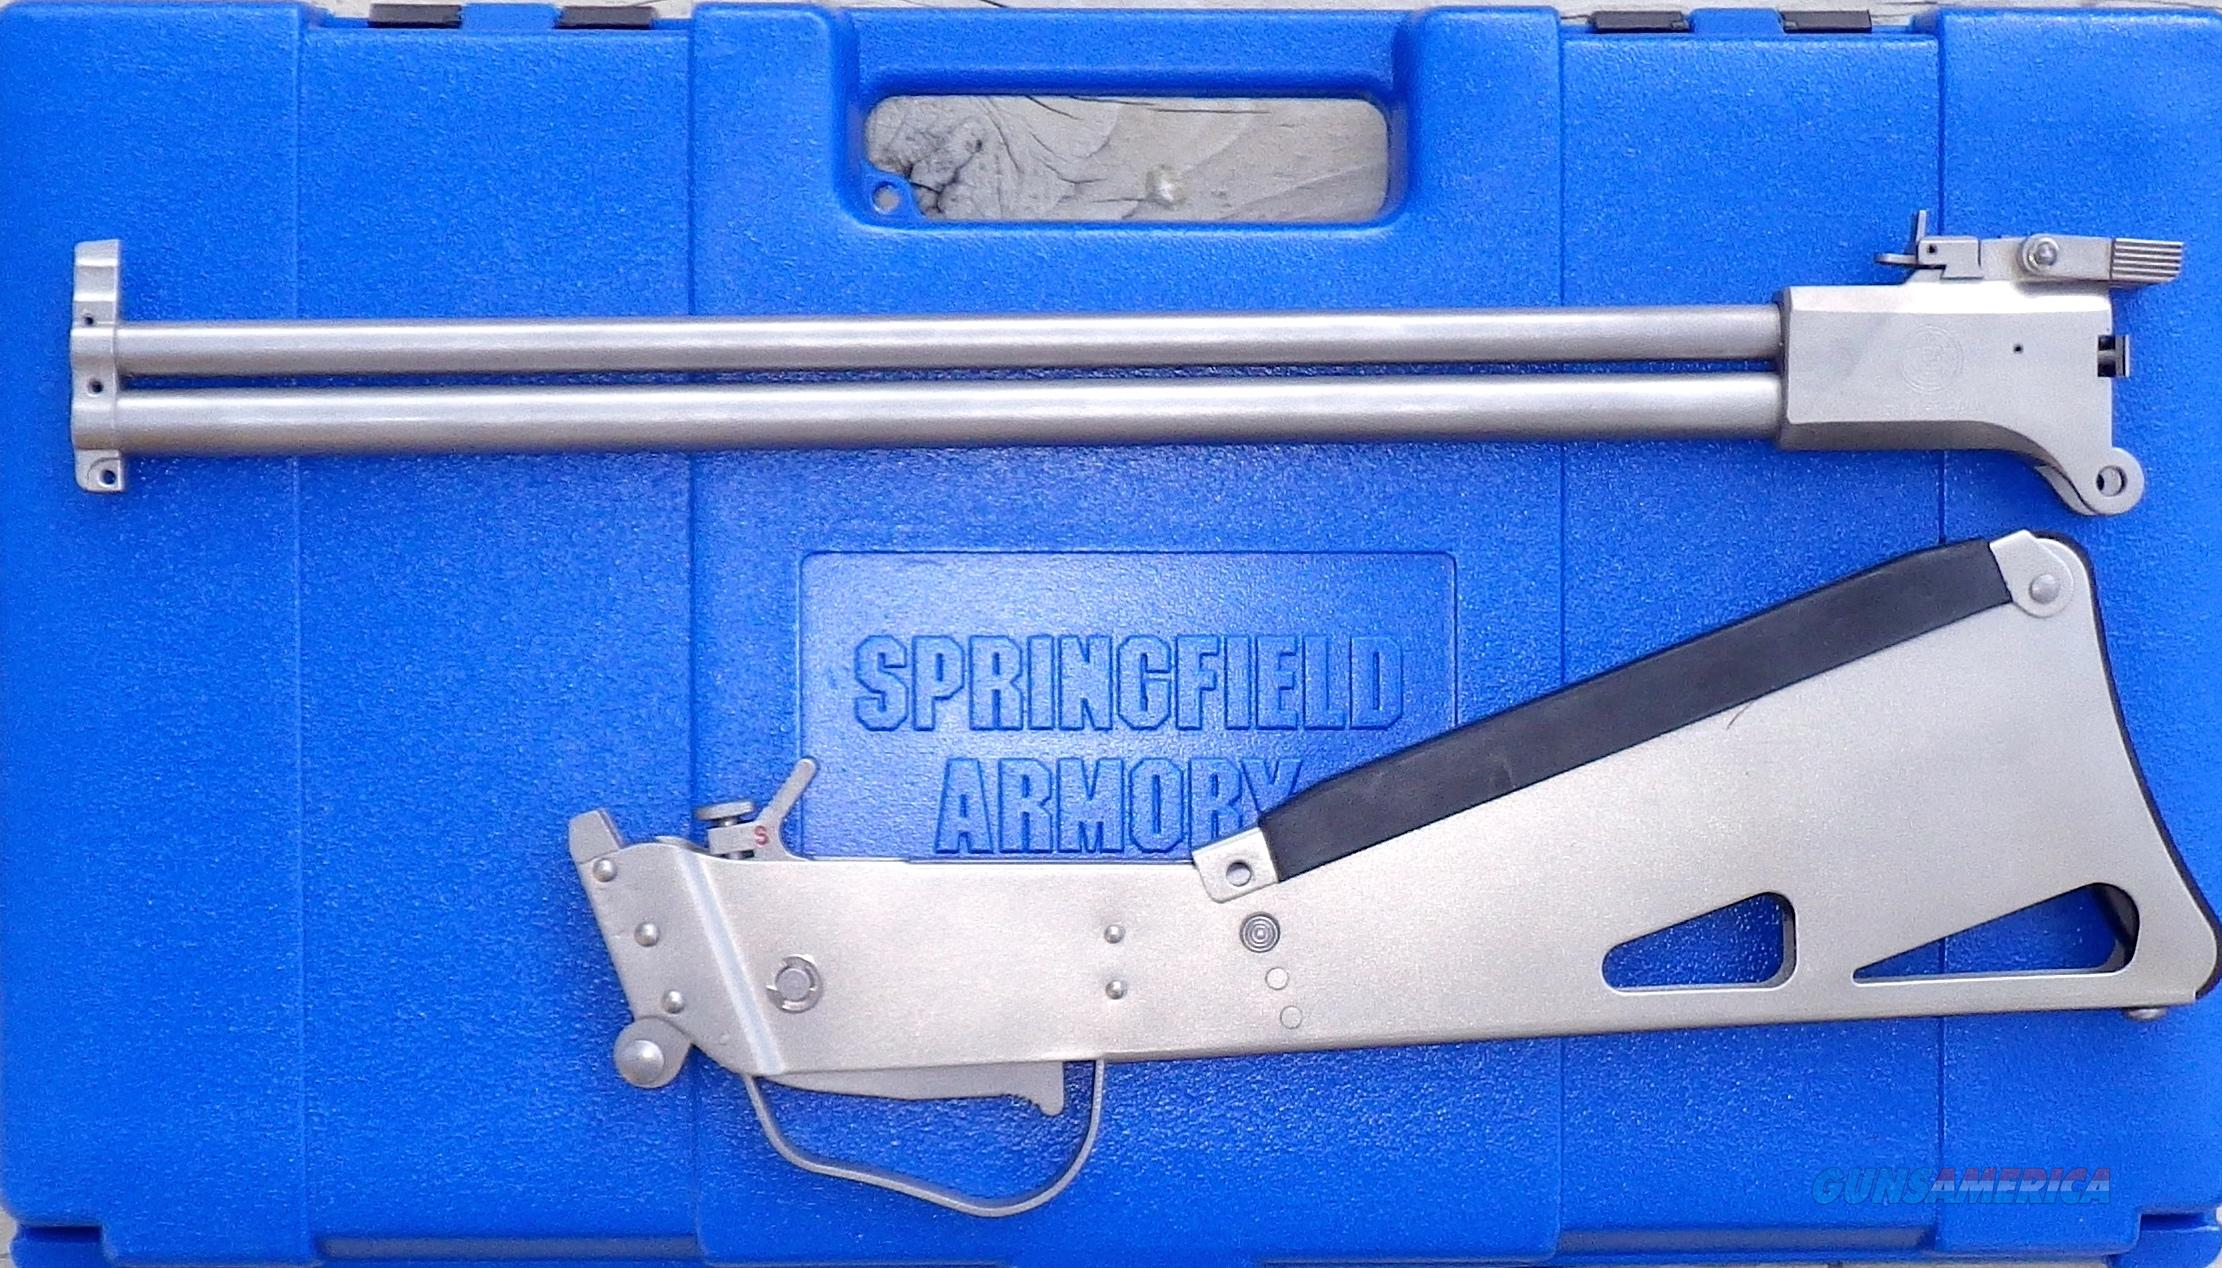 Springfield Armory M6 Scout,stainless steel, .22 Hornet / .410, hard case, new  Guns > Rifles > Springfield Armory Rifles > M1A/M14